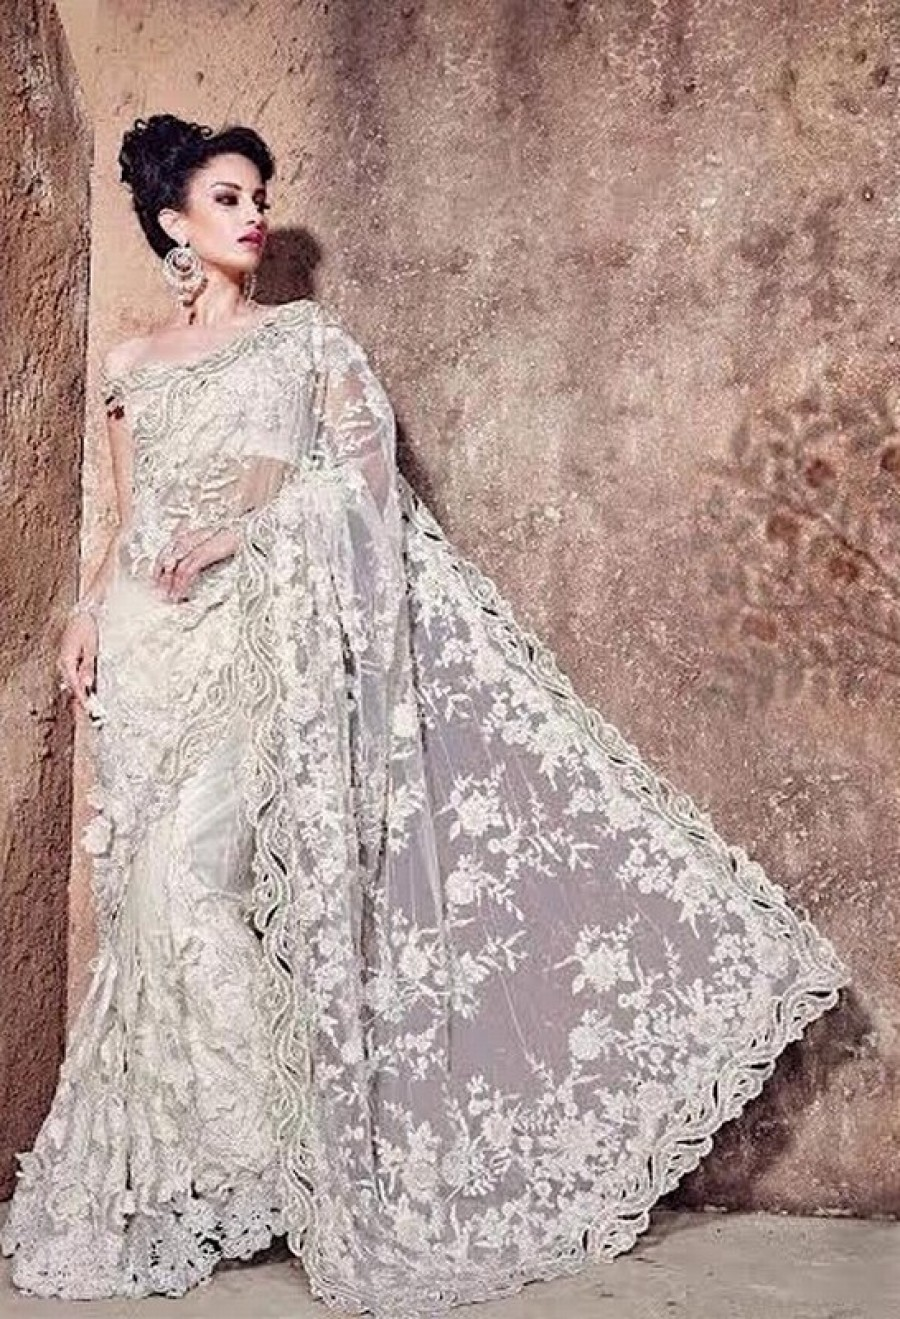 f4ef252a2d7a1 Get White worked ner bridal designer saree with blouse at best price ...